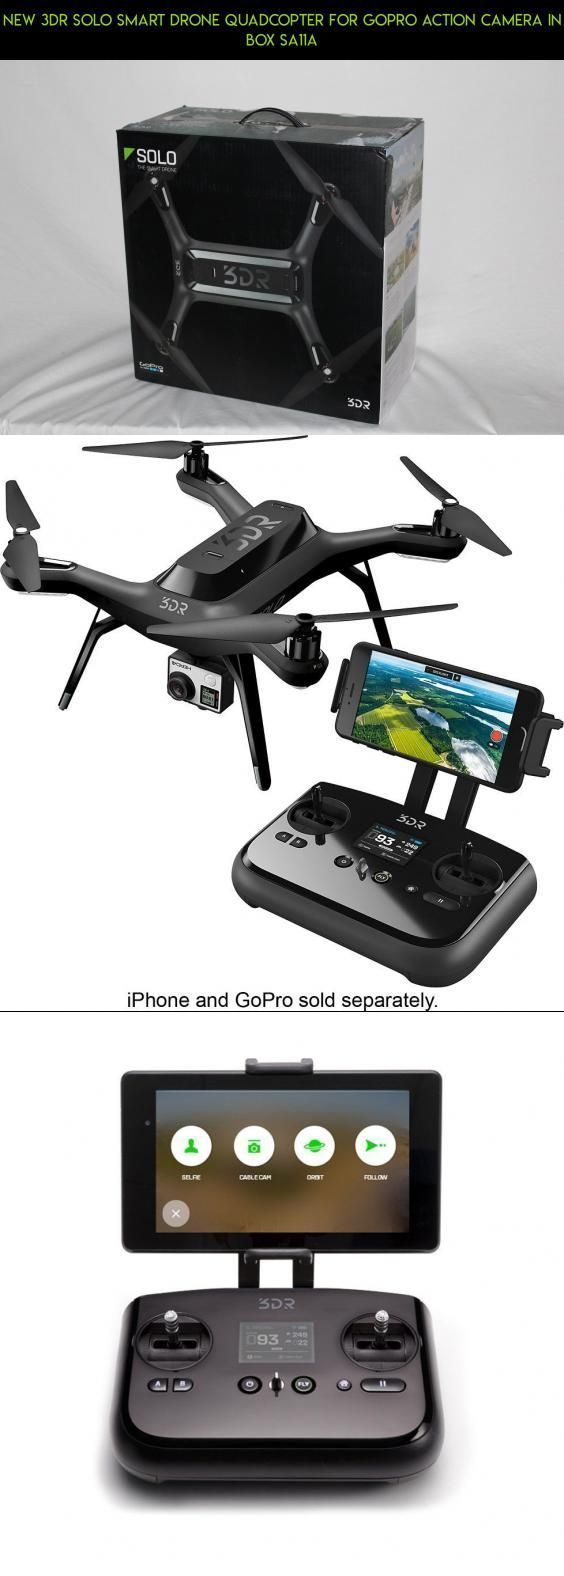 NEW 3DR SOLO SMART DRONE QUADCOPTER for GoPro Action Camera in Box SA11A #camera #plans #technology #fpv #shopping #camera #gadgets #parts #products #tech #drone #kit #racing #3dr